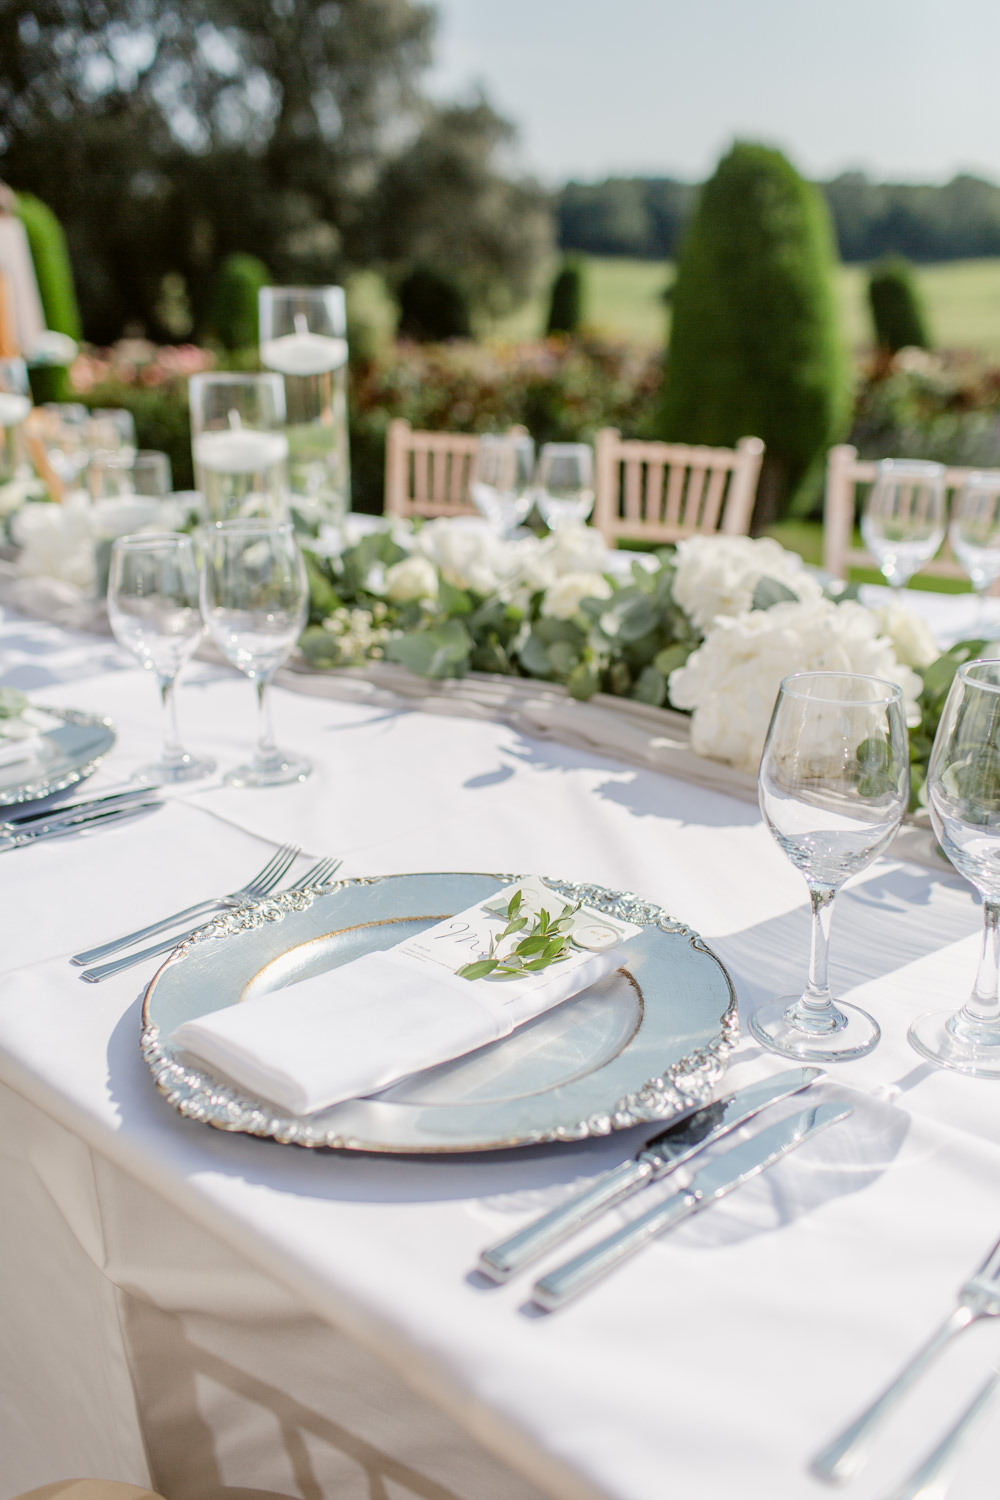 Table Tablescape Decor Greenery Foliage Runner Place Setting Stately Home Wedding Whitney Lloyd Photography